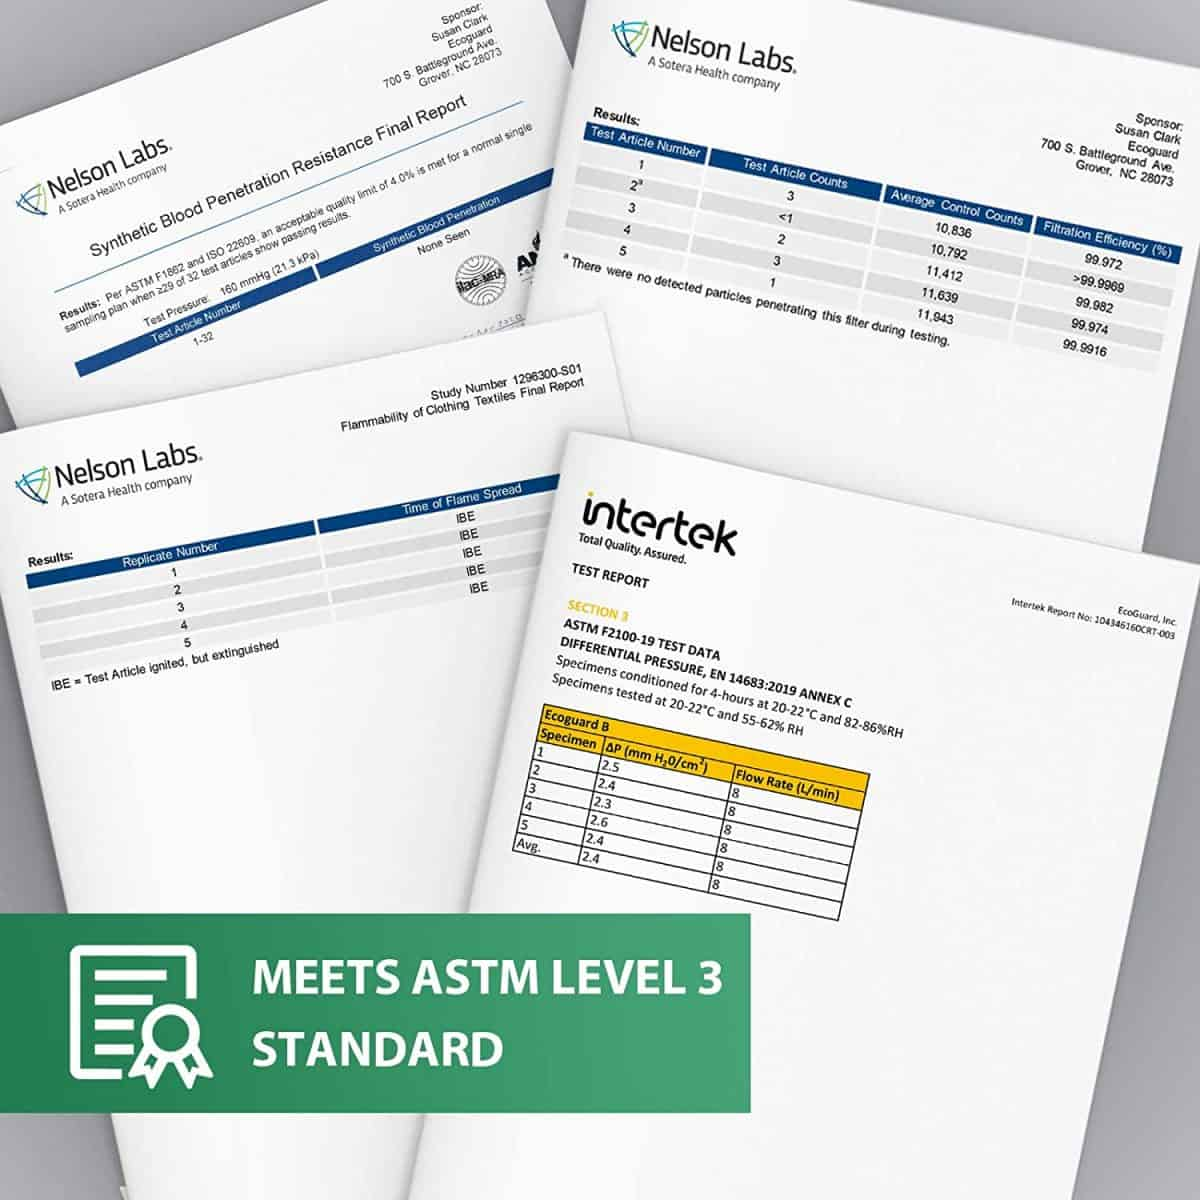 Made in USA, ASTM Level 3 Performance Proven in Nelson Labs Studies, ECOGUARD 3-ply Disposable Face Mask, 50 Pack Breathable 10